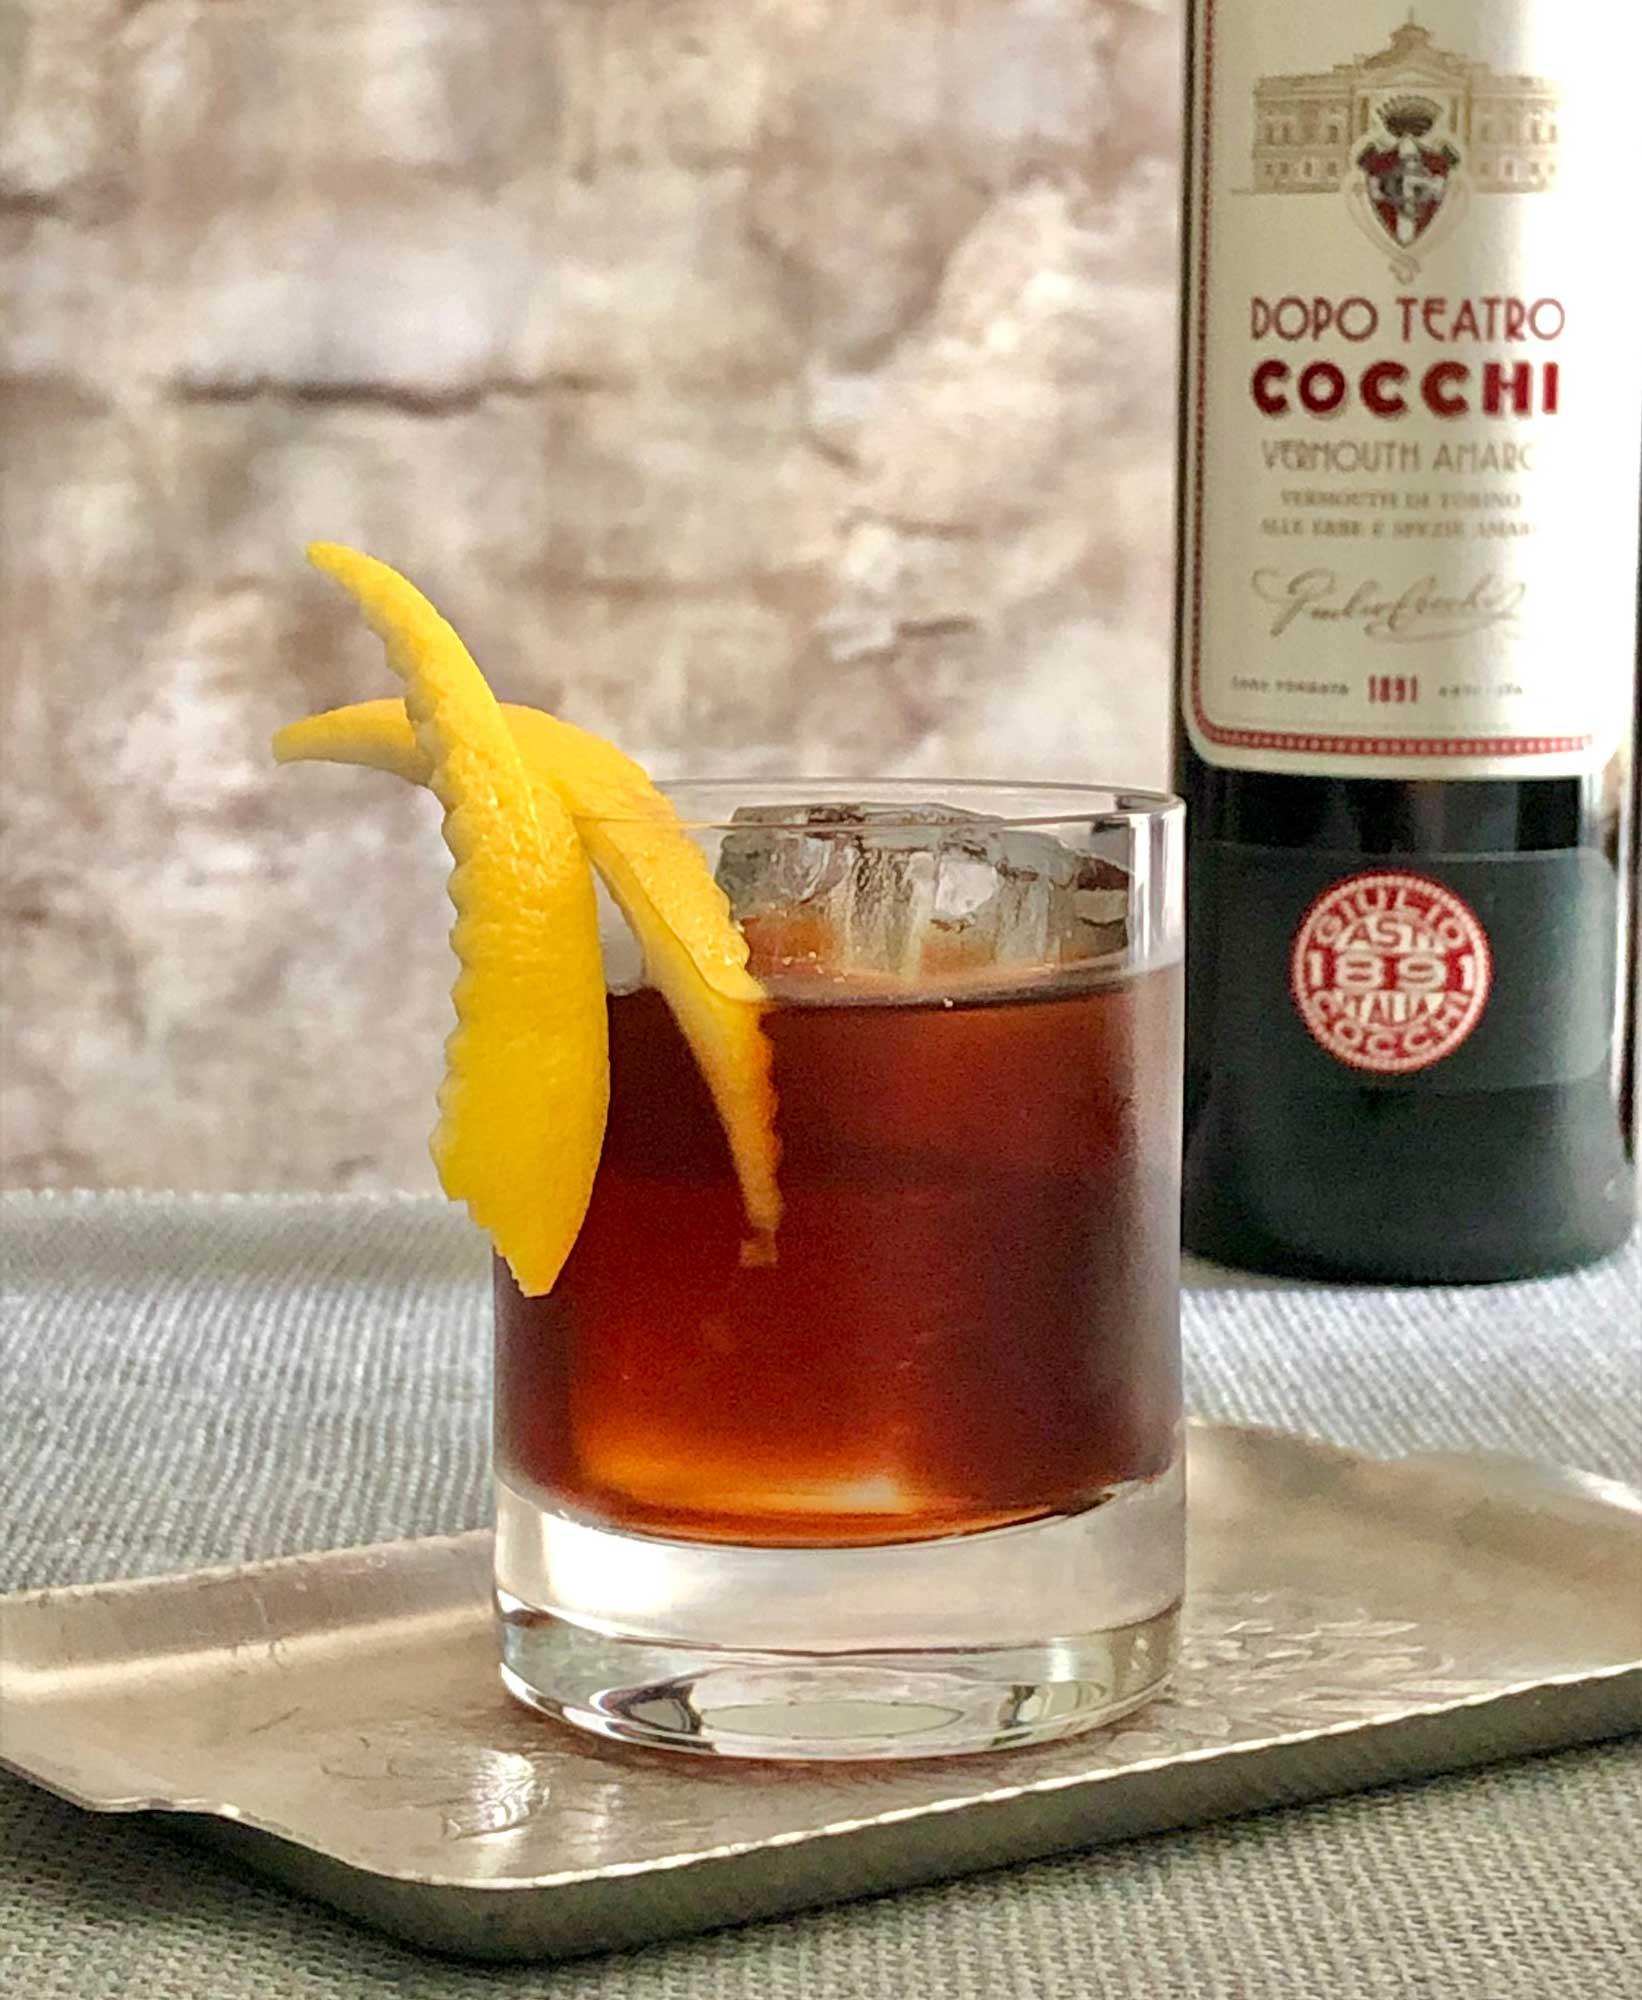 An example of the Dopo Teatro, the mixed drink (cocktail) featuring Cocchi Dopo Teatro Vermouth Amaro; photo by Lee Edwards